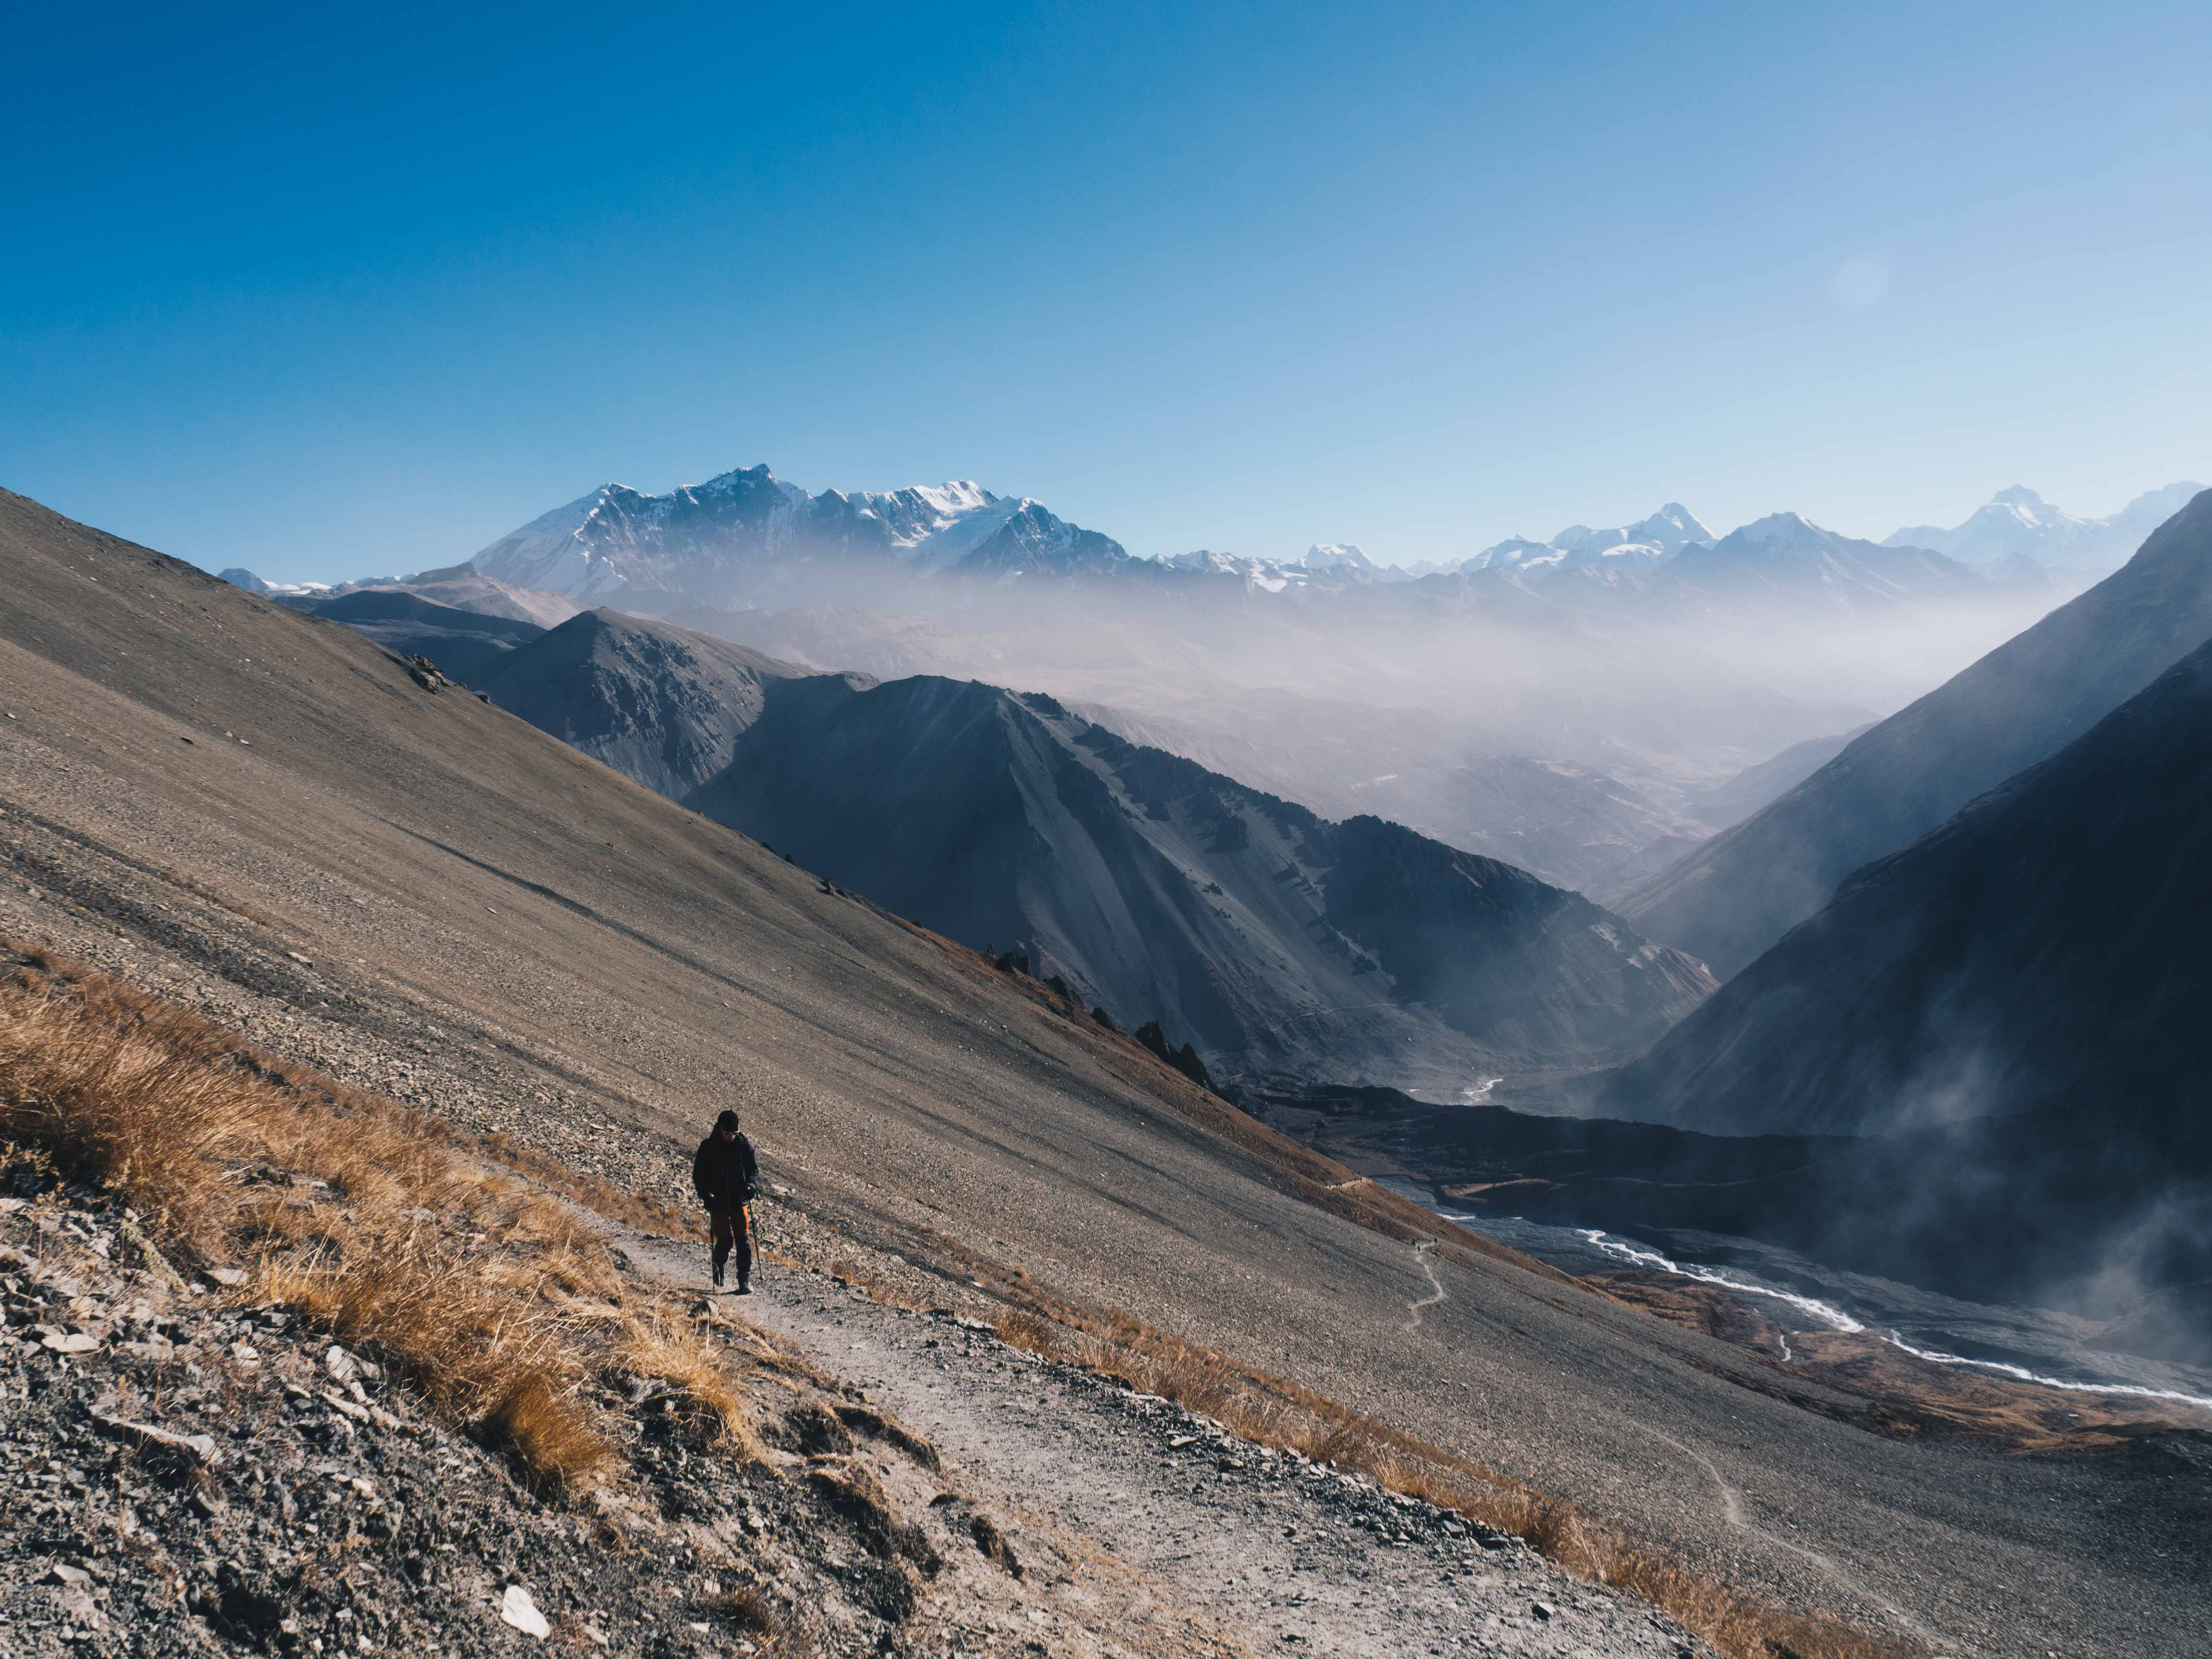 Image for blog article: Annapurna Circuit Trek